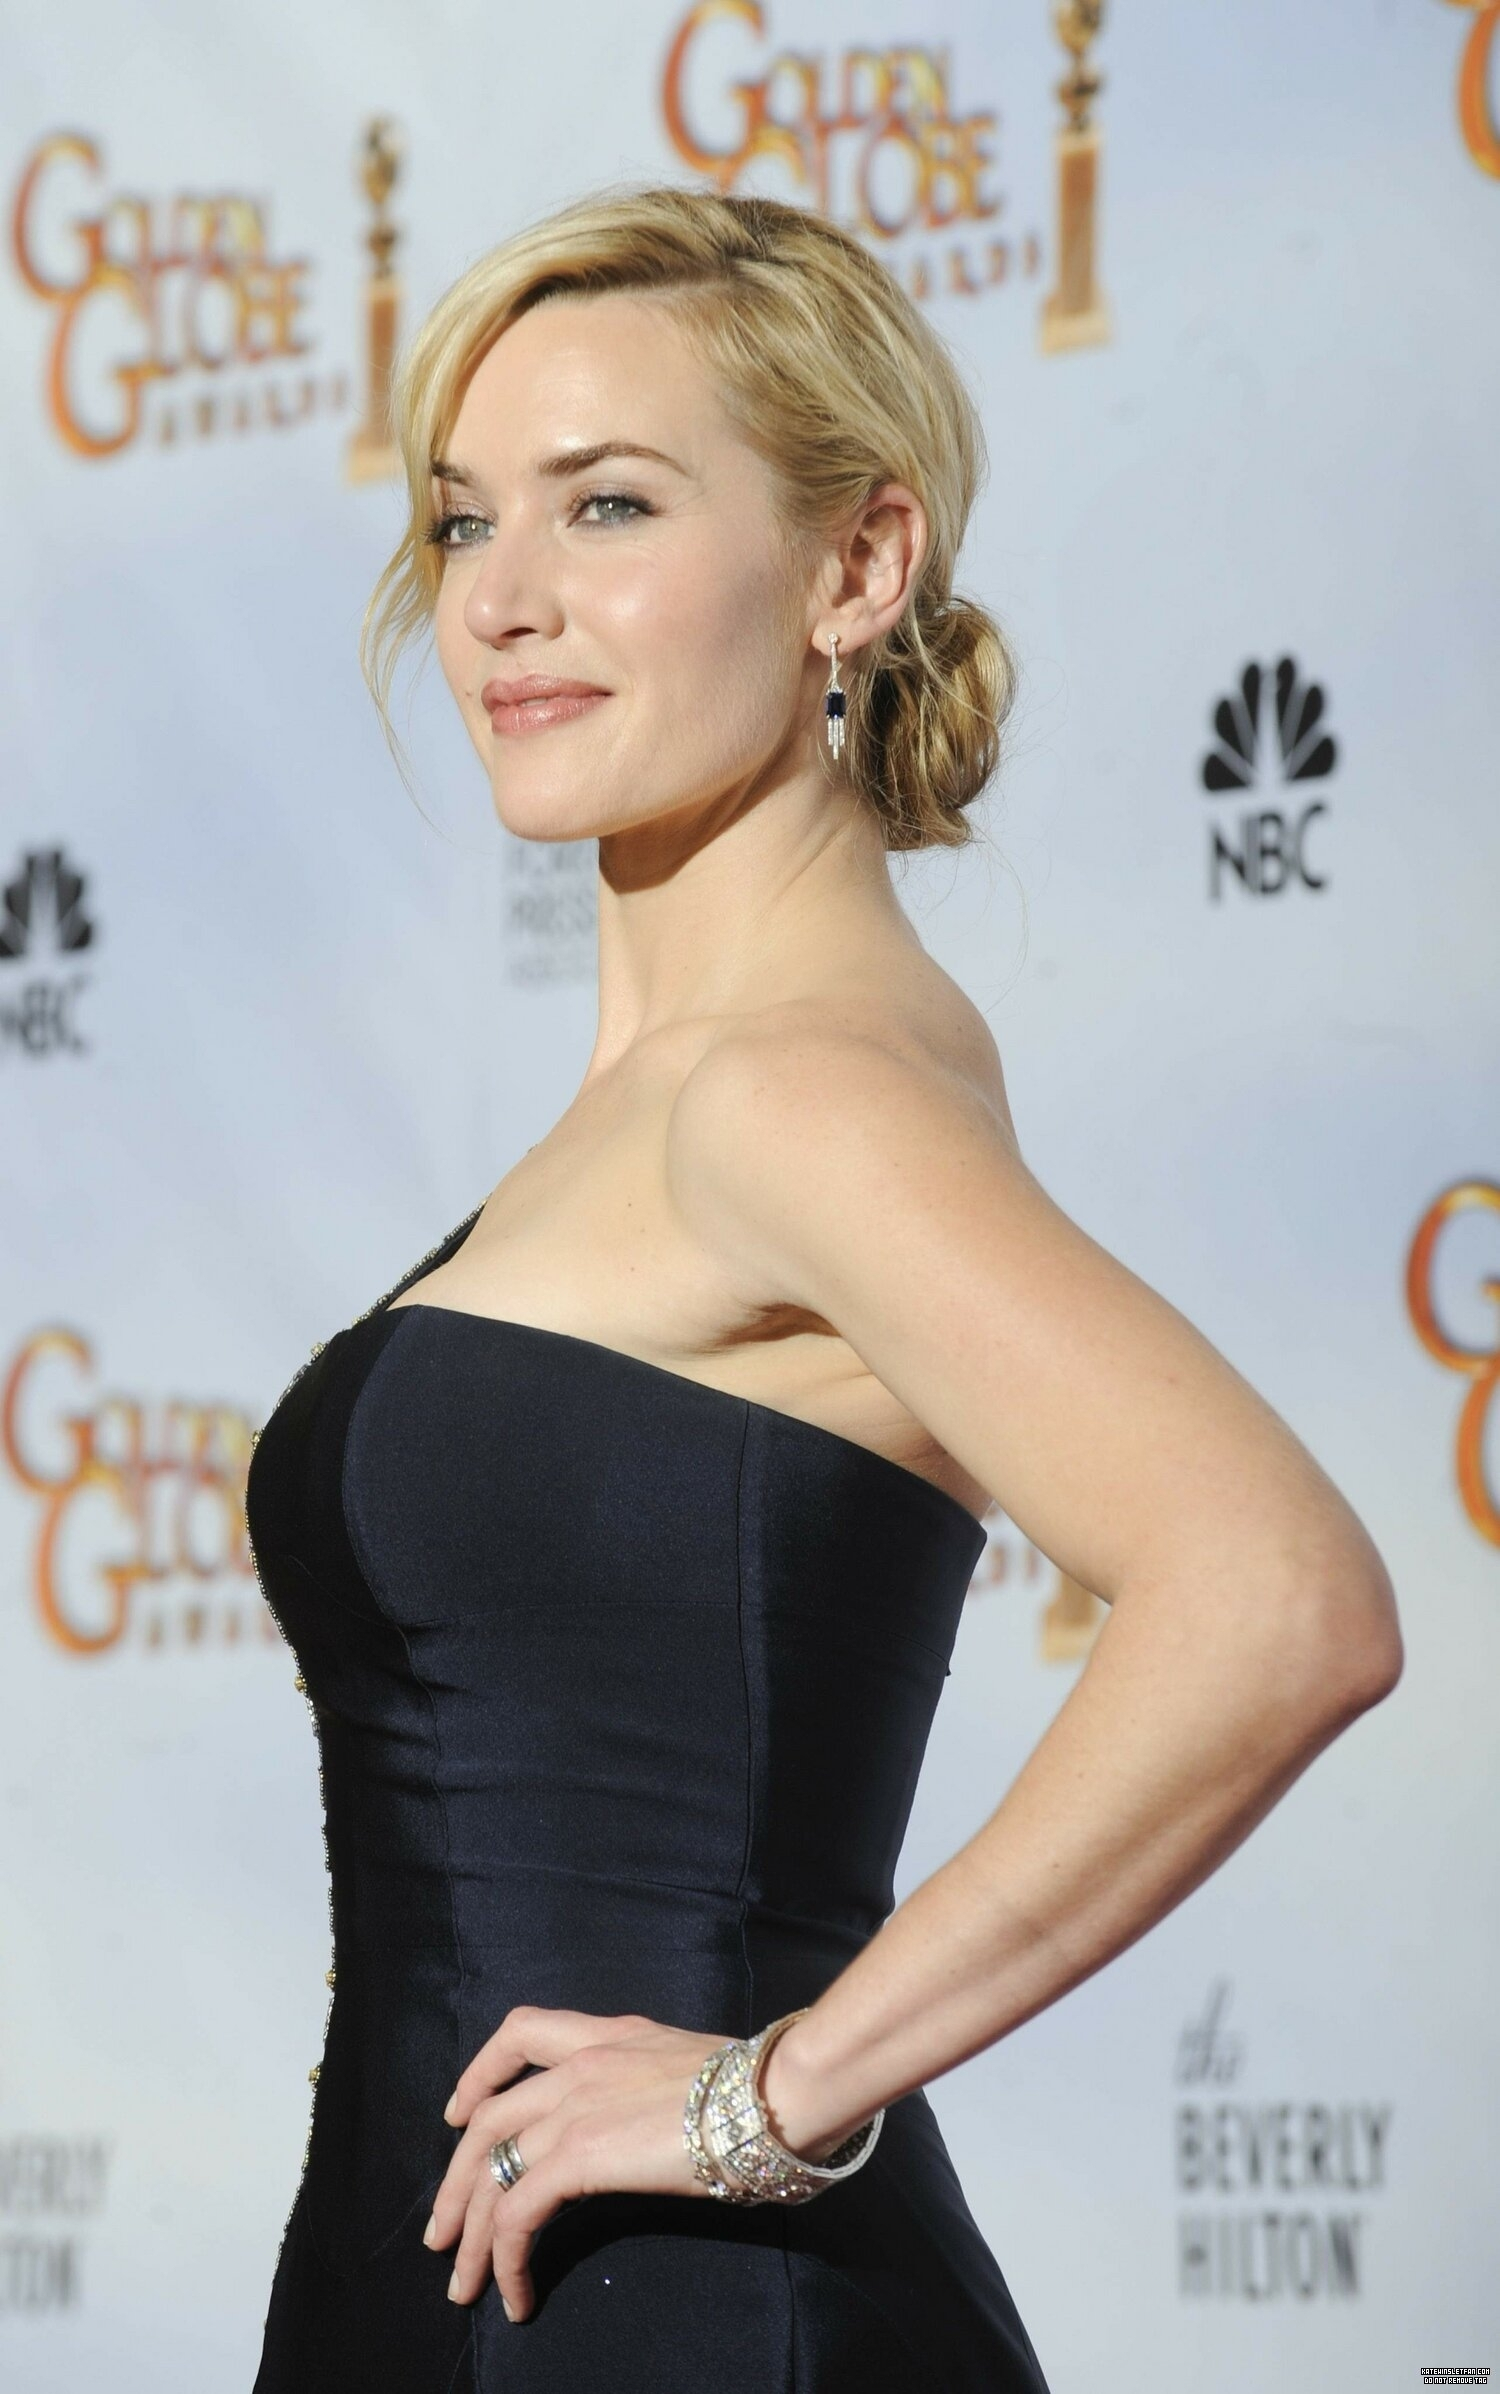 Kate - Kate Winslet Photo (10589921) - Fanpop Kate Winslet Boyfriend